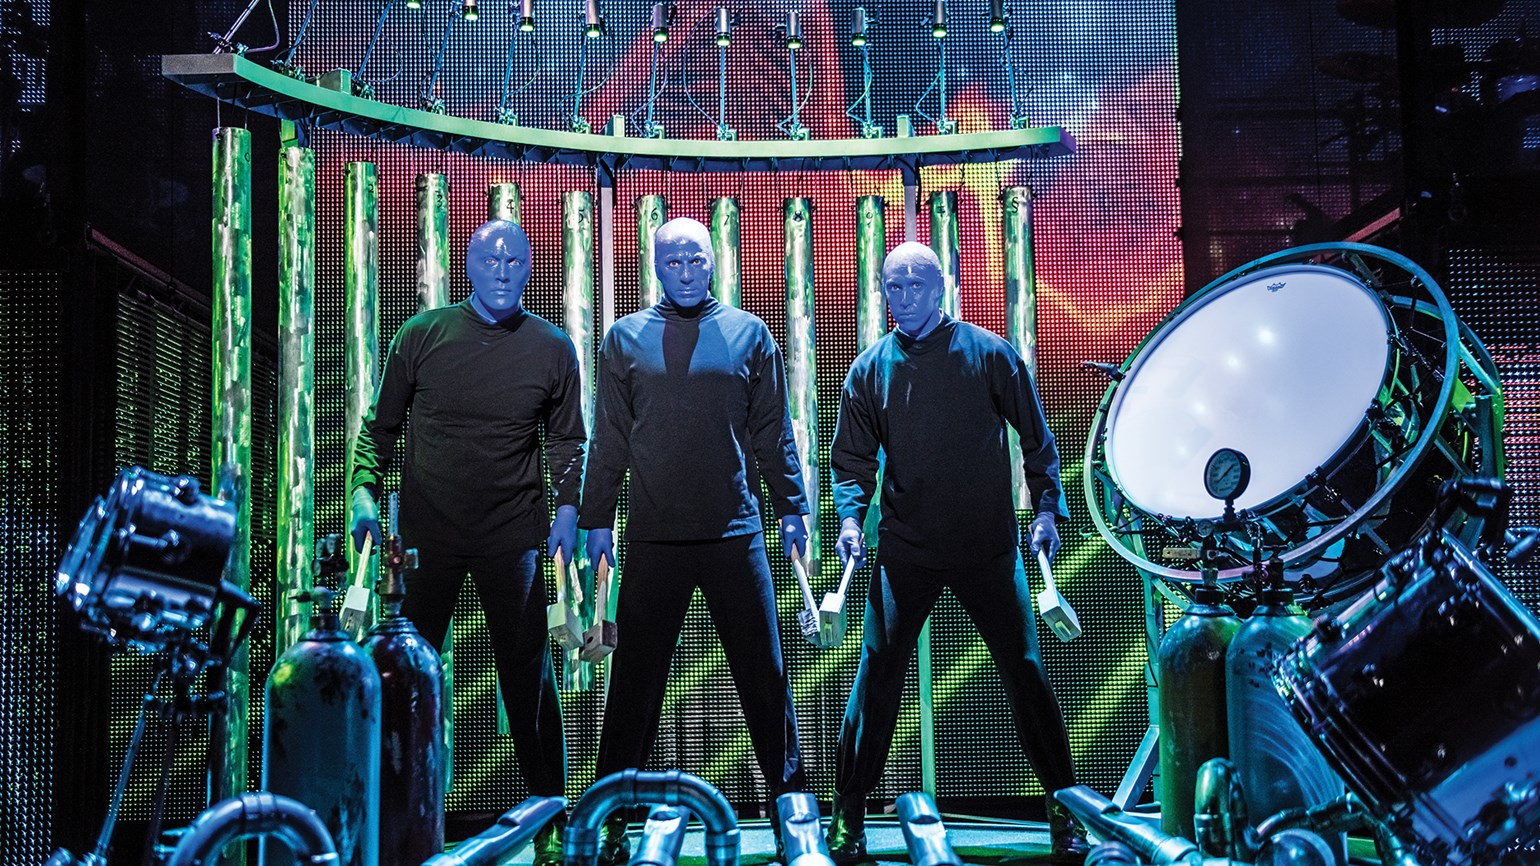 Blue Man's shows are ever-evolving